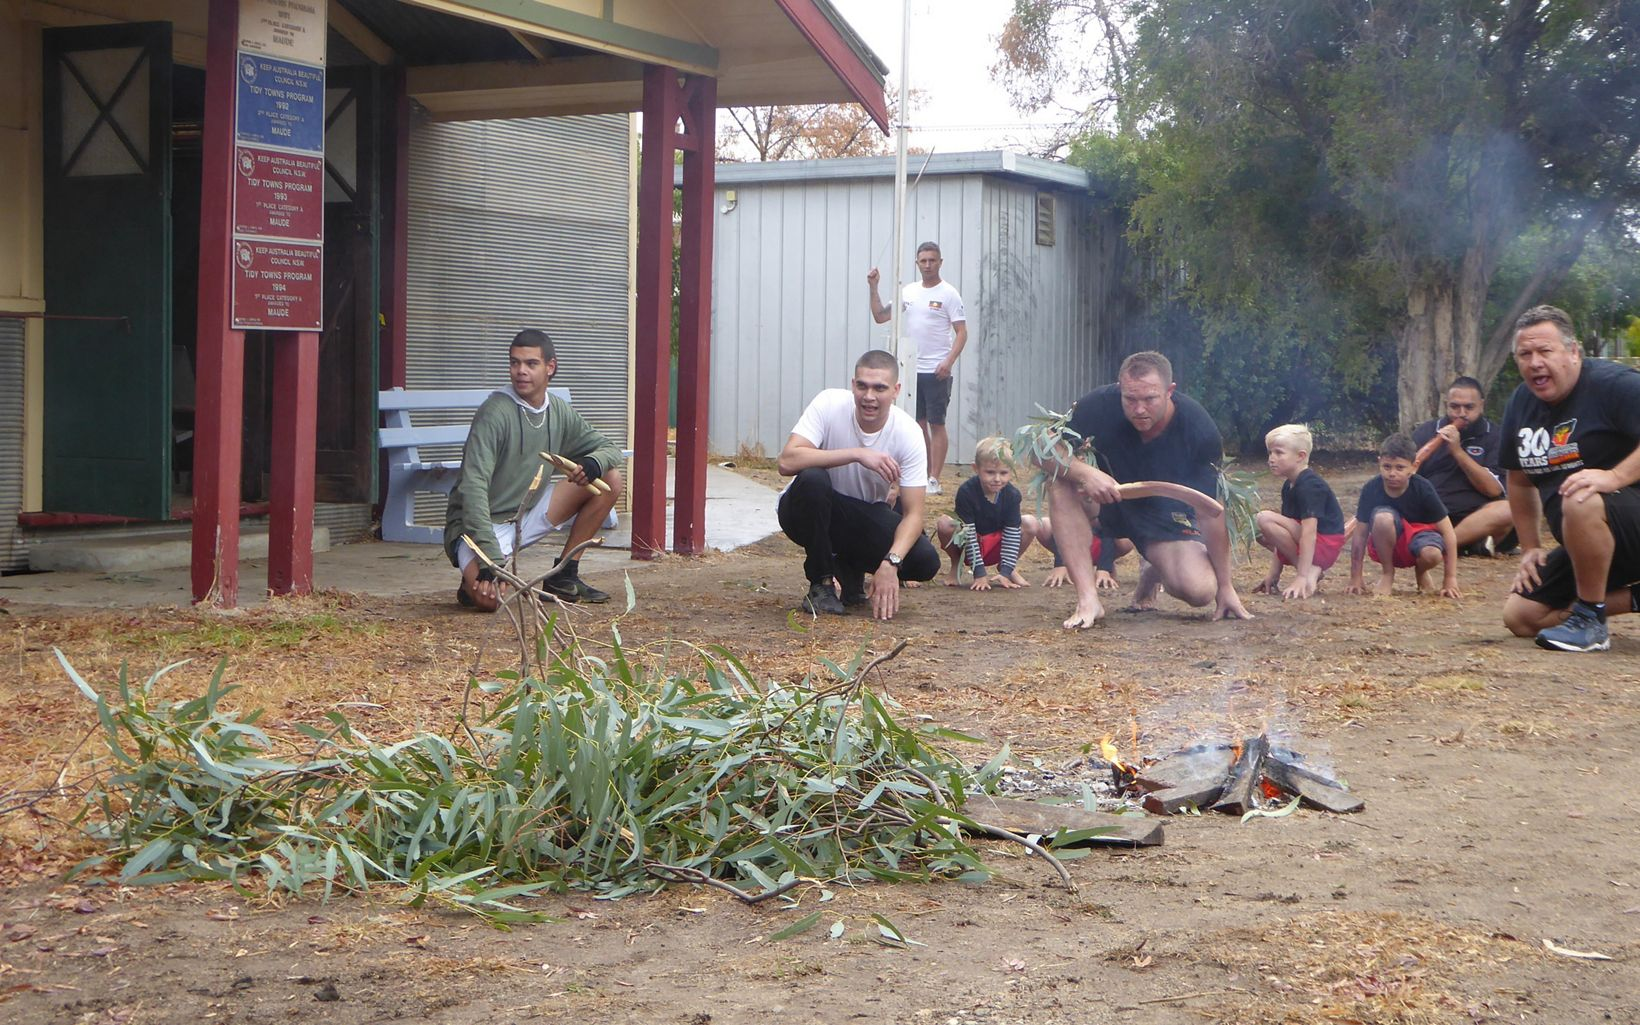 smoking ceremony at the Gayini Nimmie-Caira announcement, Maude, NSW